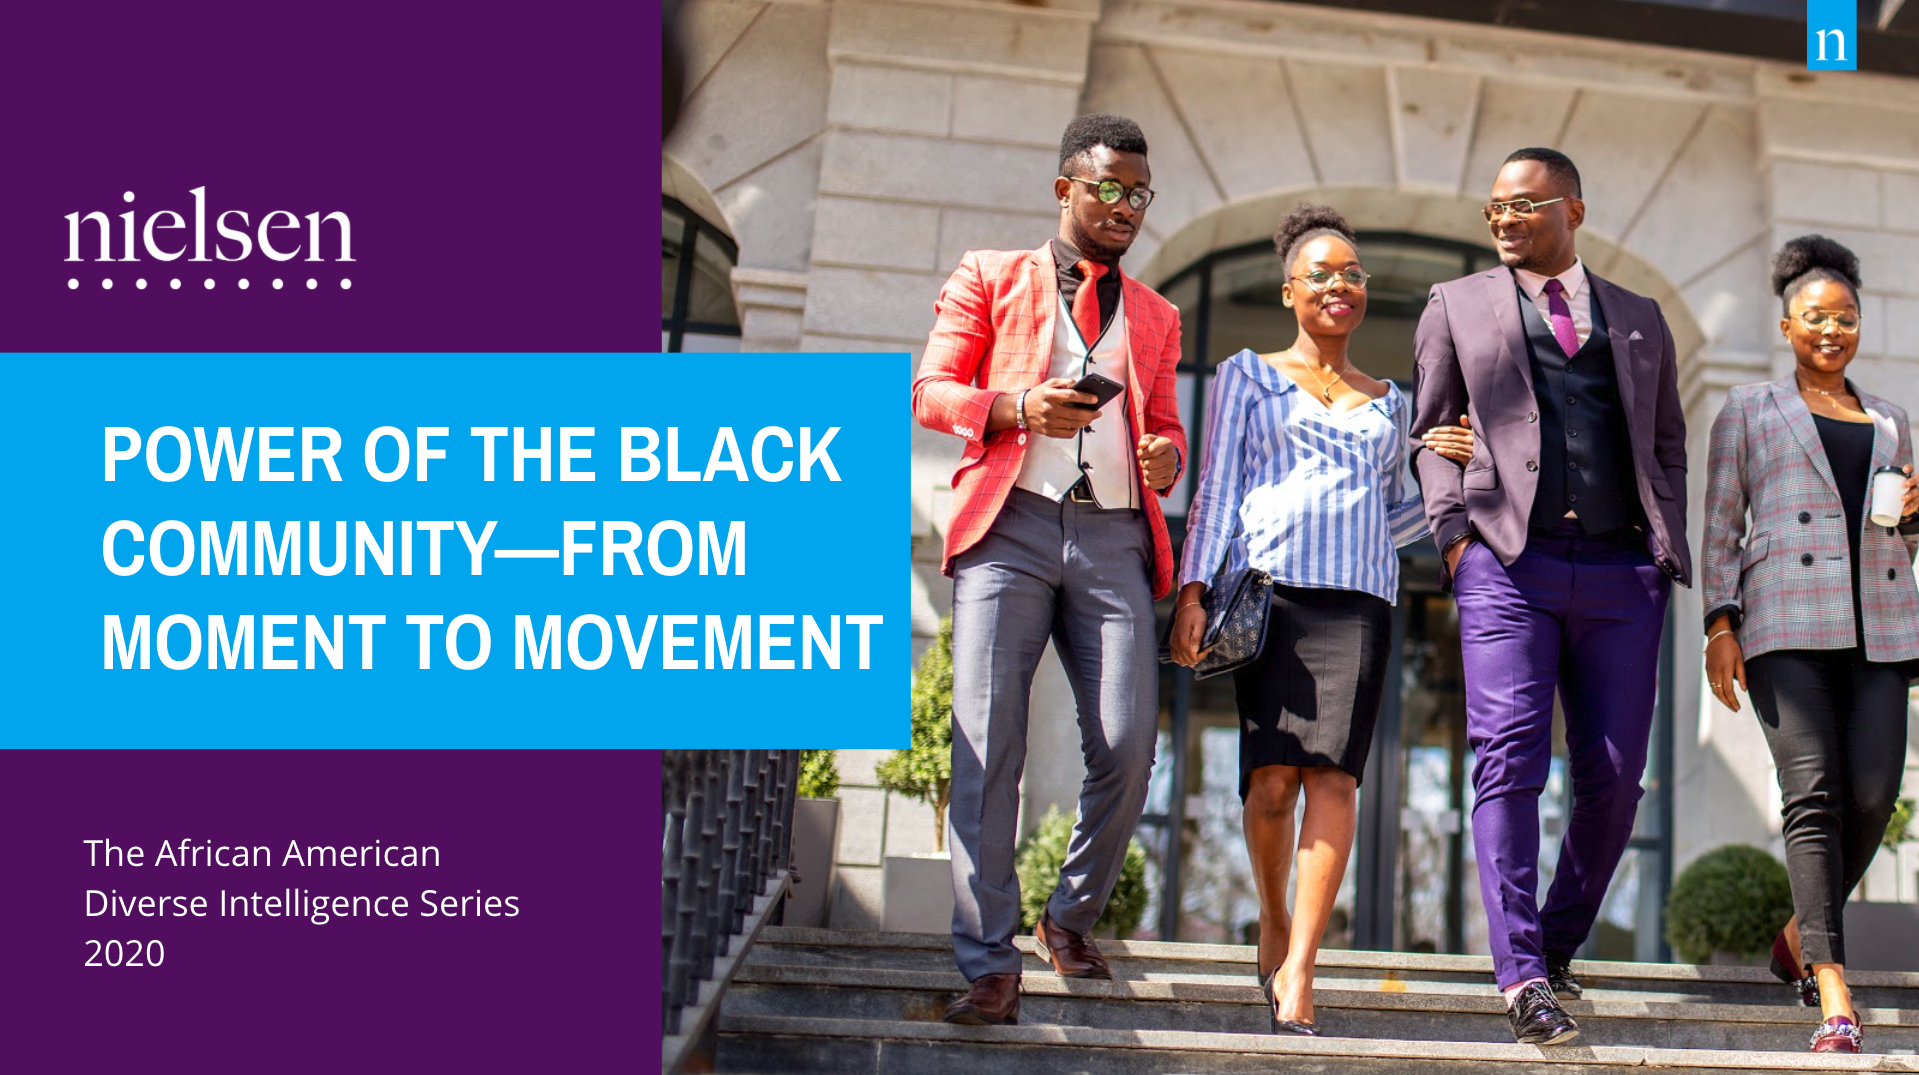 """""""African Americans are calling out systemic racism while at the same time creating opportunities for growth across social platforms and businesses with various levels of innovation,"""" said Cheryl Grace, Senior Vice President of Consumer Insights and Engagement, Nielsen."""